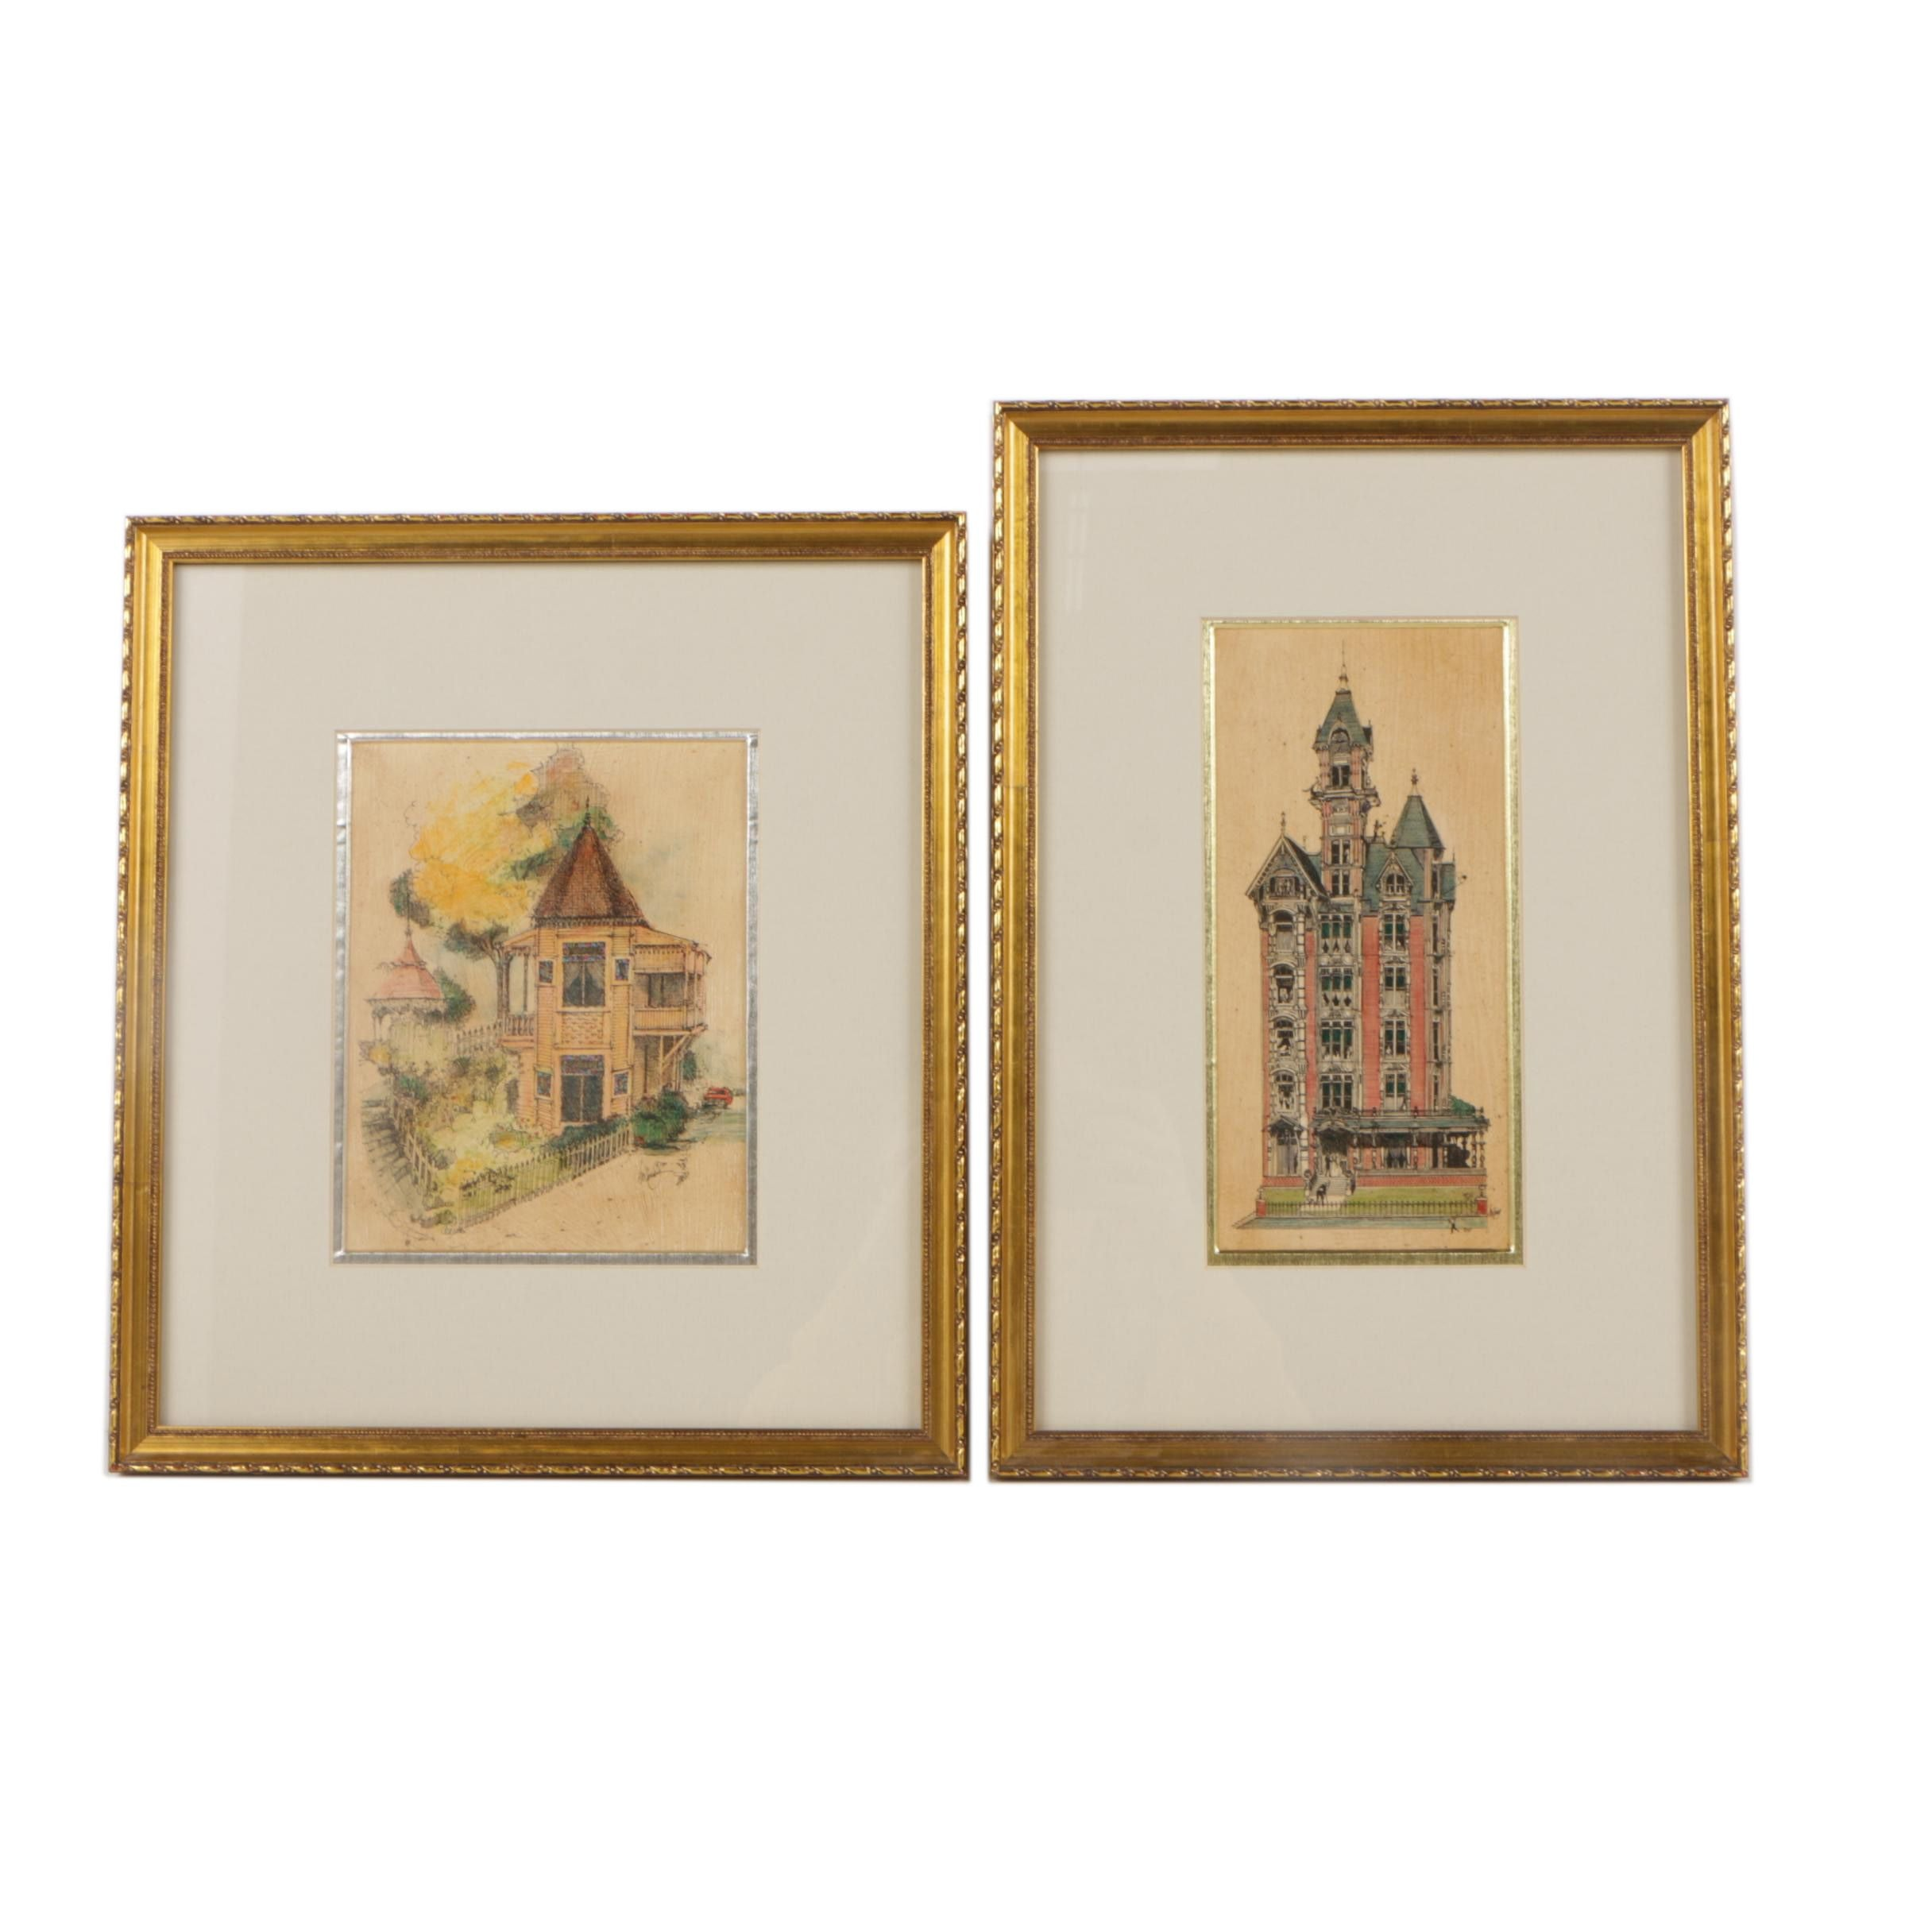 1980s Embellished Lithographs After Holloway of Victorian Style Homes